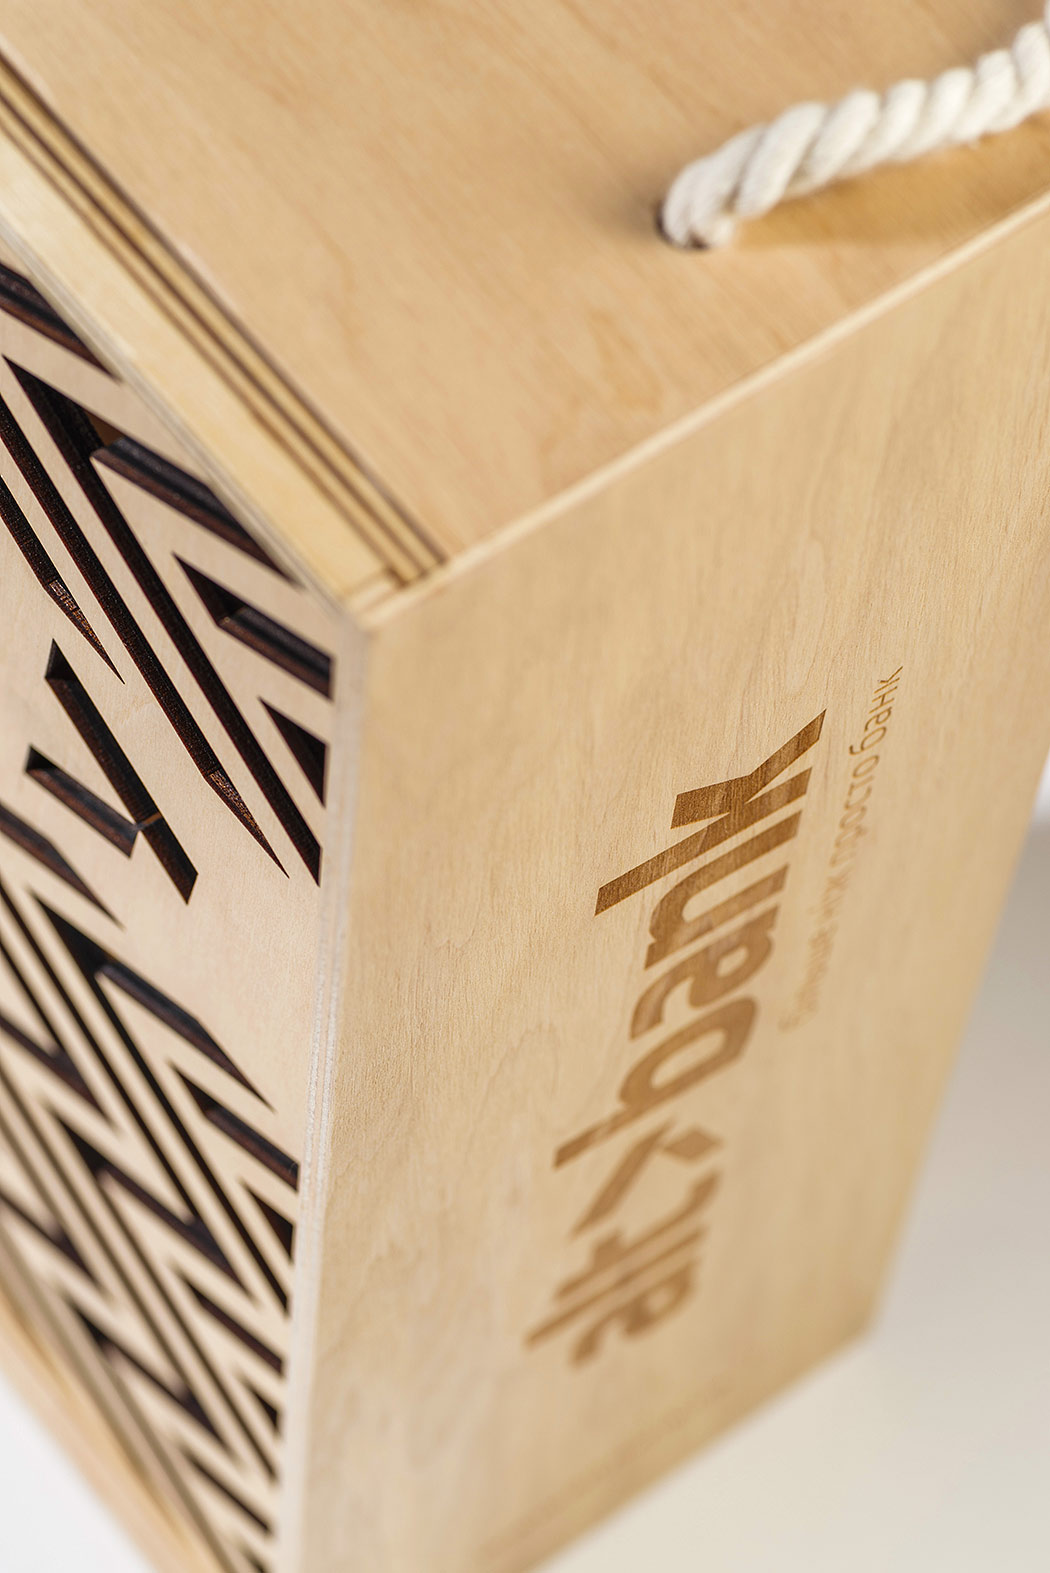 The plywood box for wine with logo Altbank.